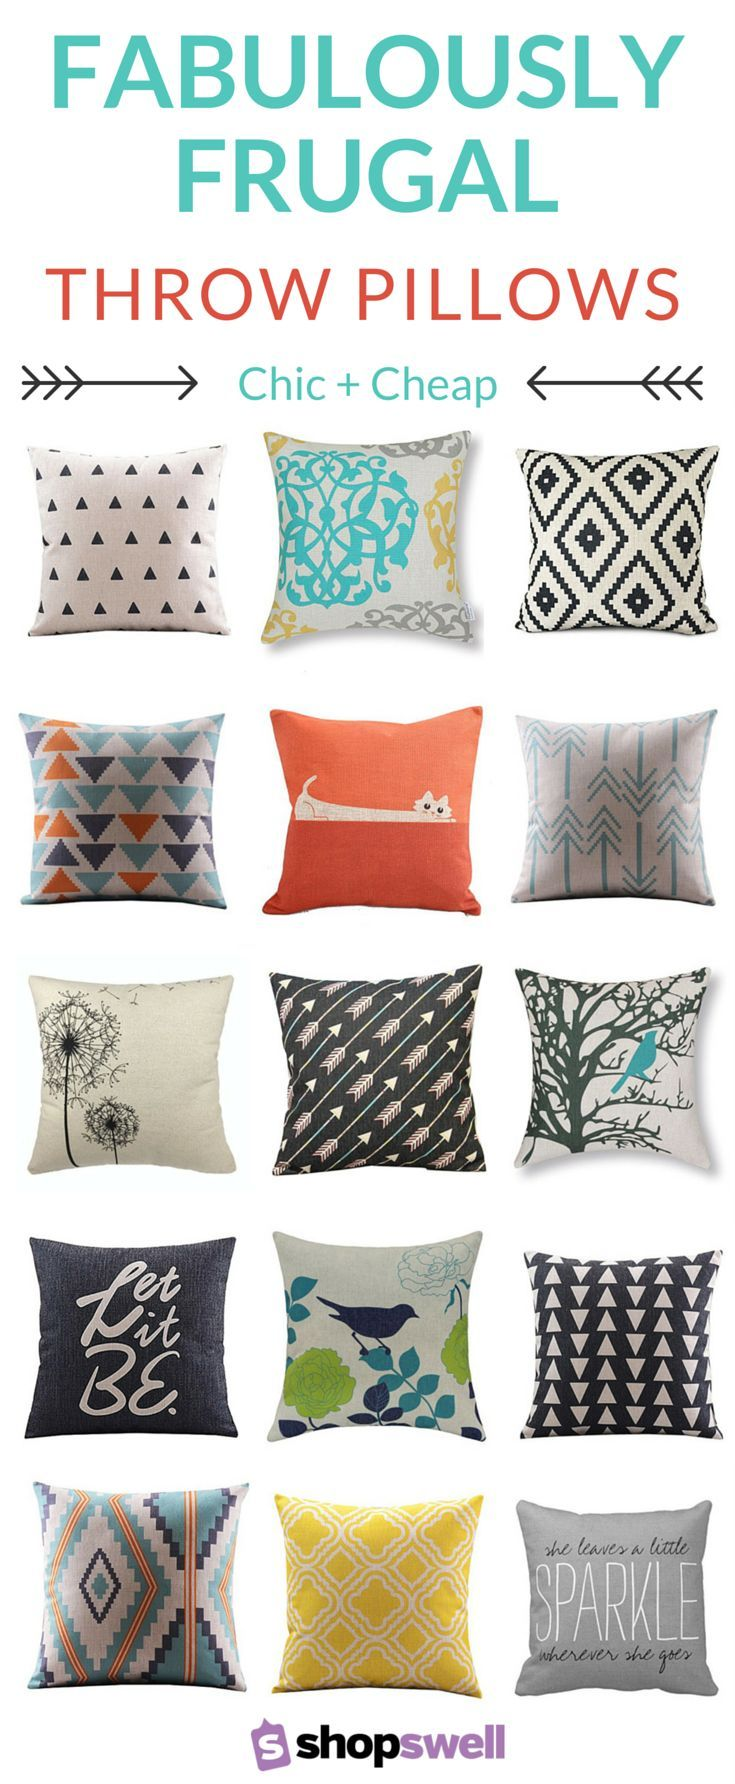 Chic, Fabulous (and Cheap!) Throw Pillows